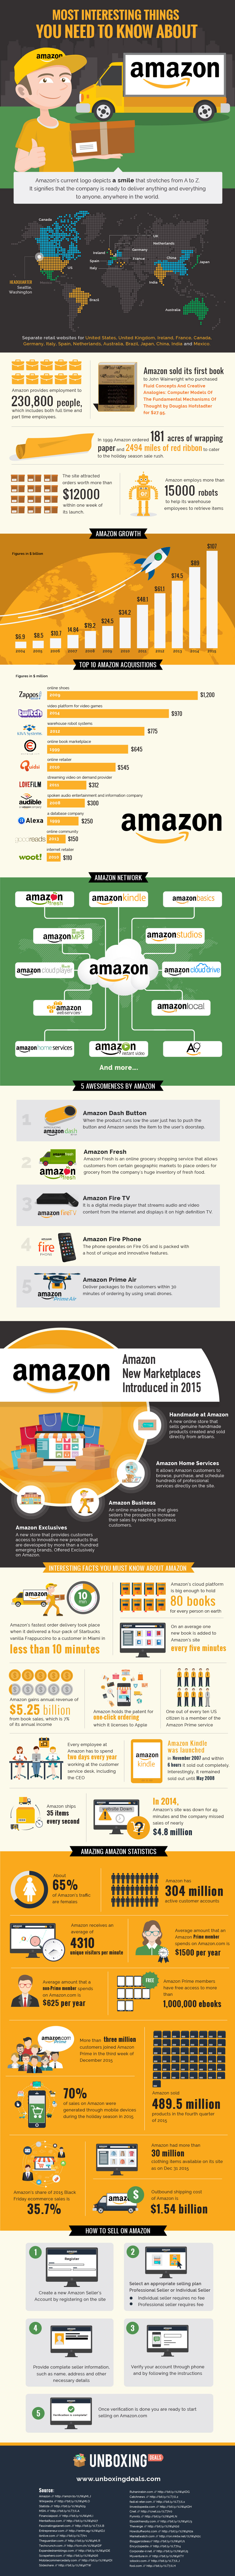 Most-Interesting-Things-about-Amazon